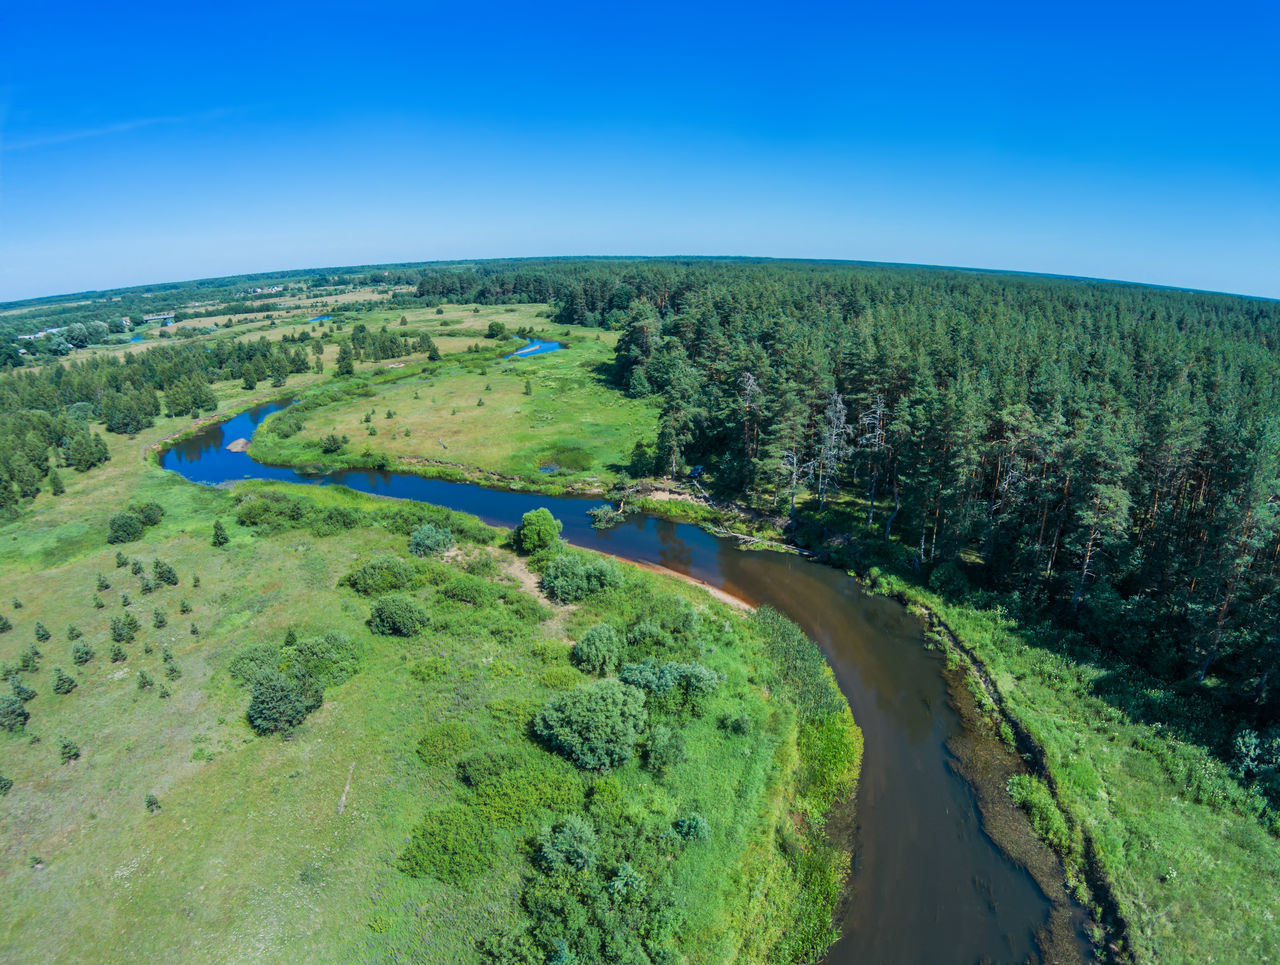 Over the river from Volchina village of Ivanovskoe Aerial Aerial Photography Aerial Shot Aerial View Blue Drone  Green Color Landscape Nature No People Outdoors River Russia Sky Summer Travel Destinations Traveling Volchina